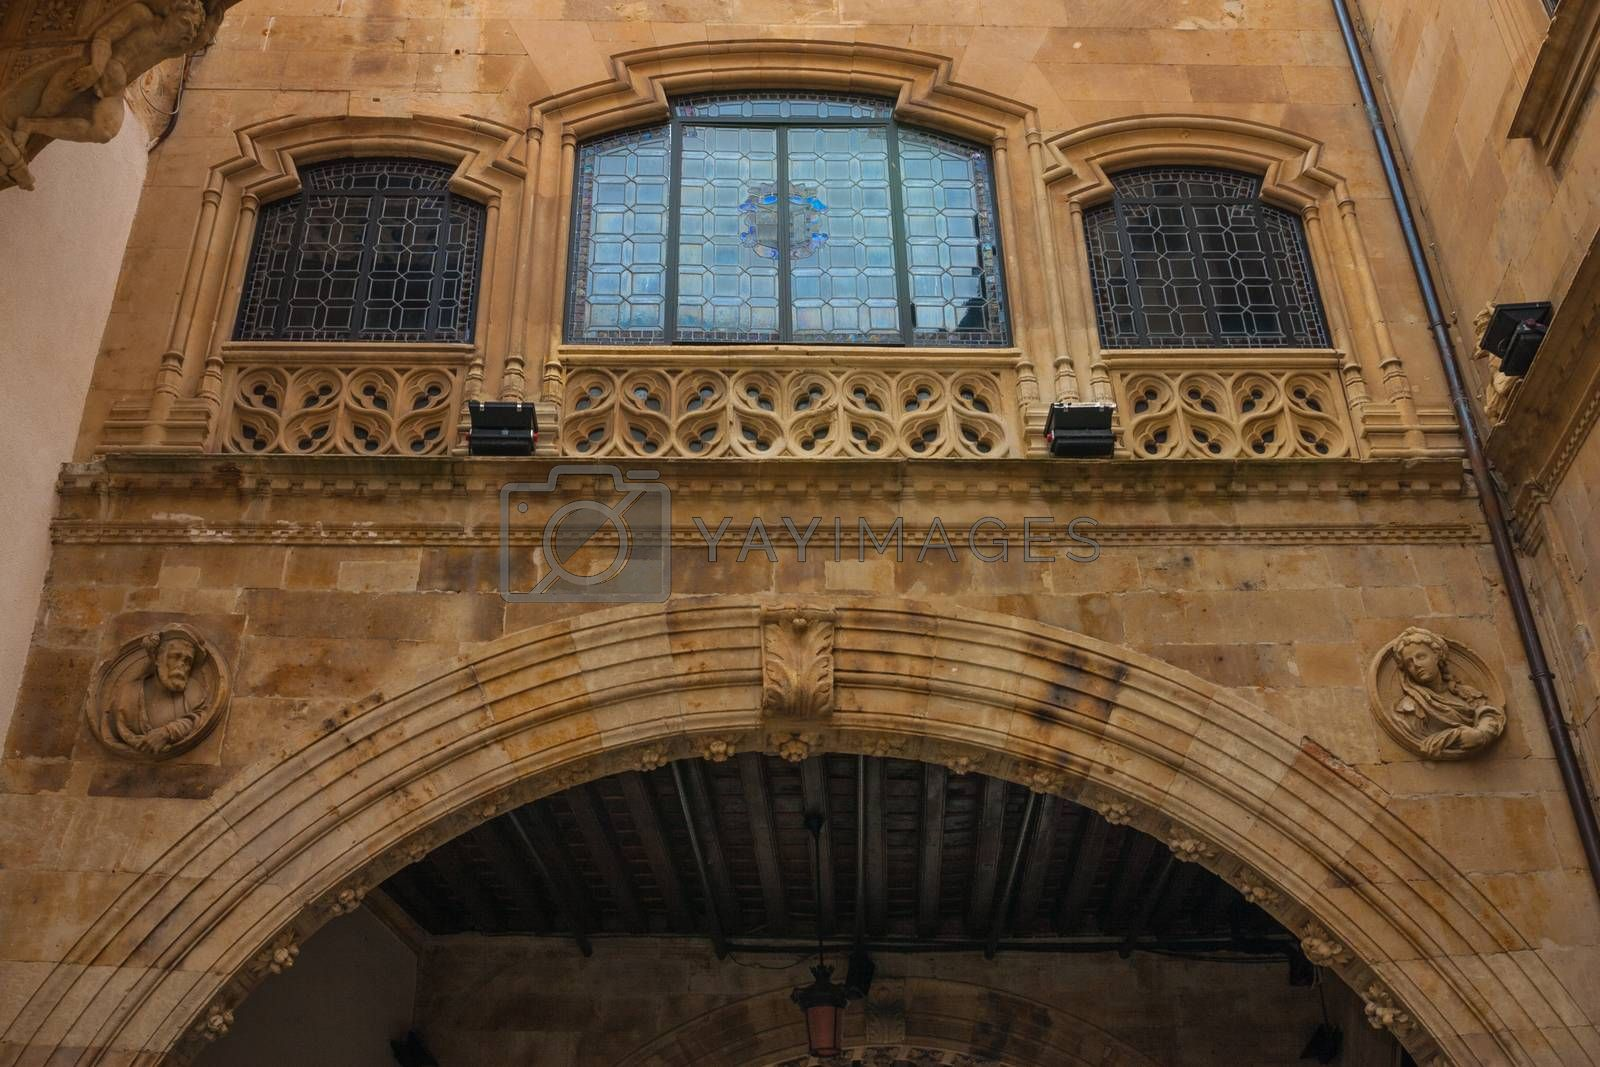 Large window in the Palace of La Salina courtyard by imagsan